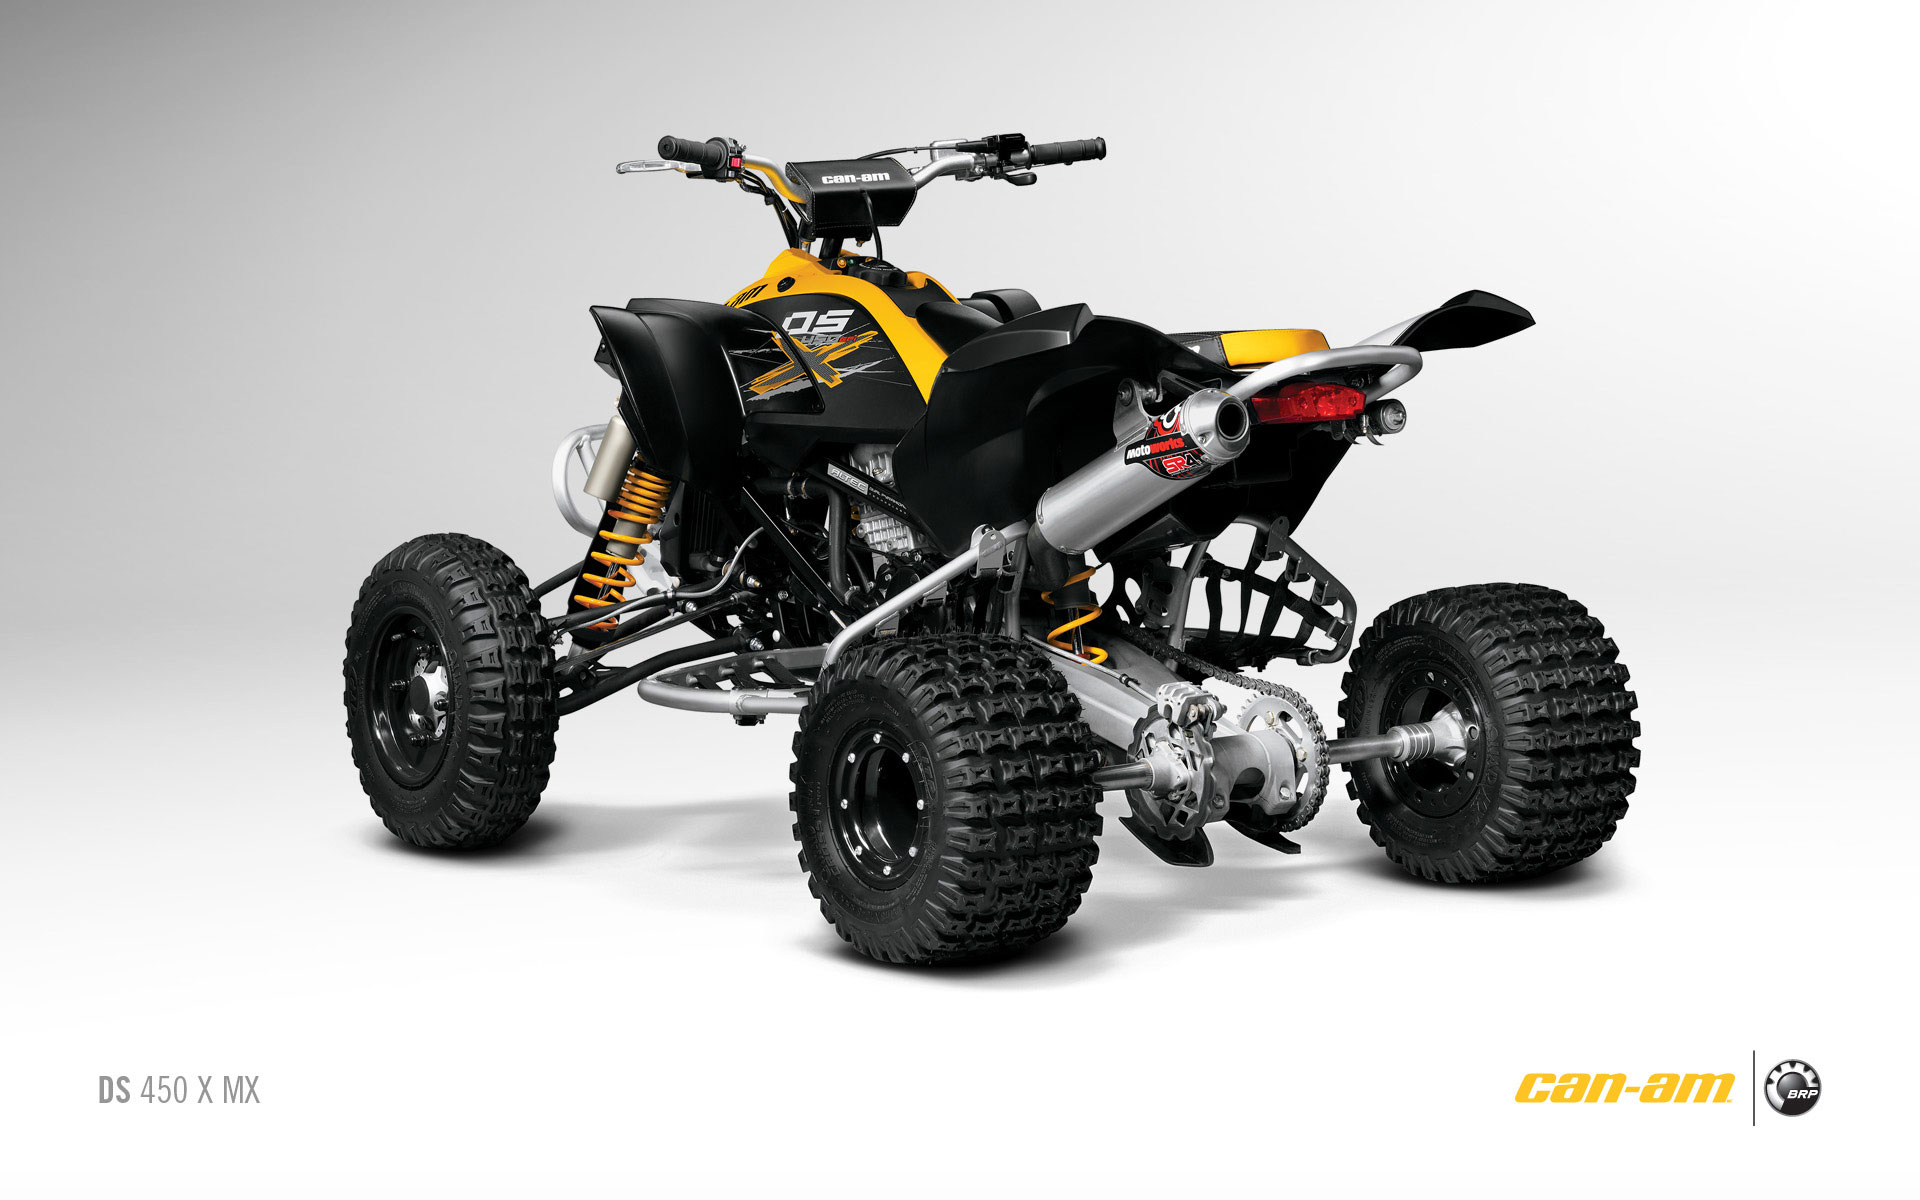 Can Am Ds 450 >> Can Am Ds 450 Atv Quad Offroad Motorbike Bike Dirtbike H